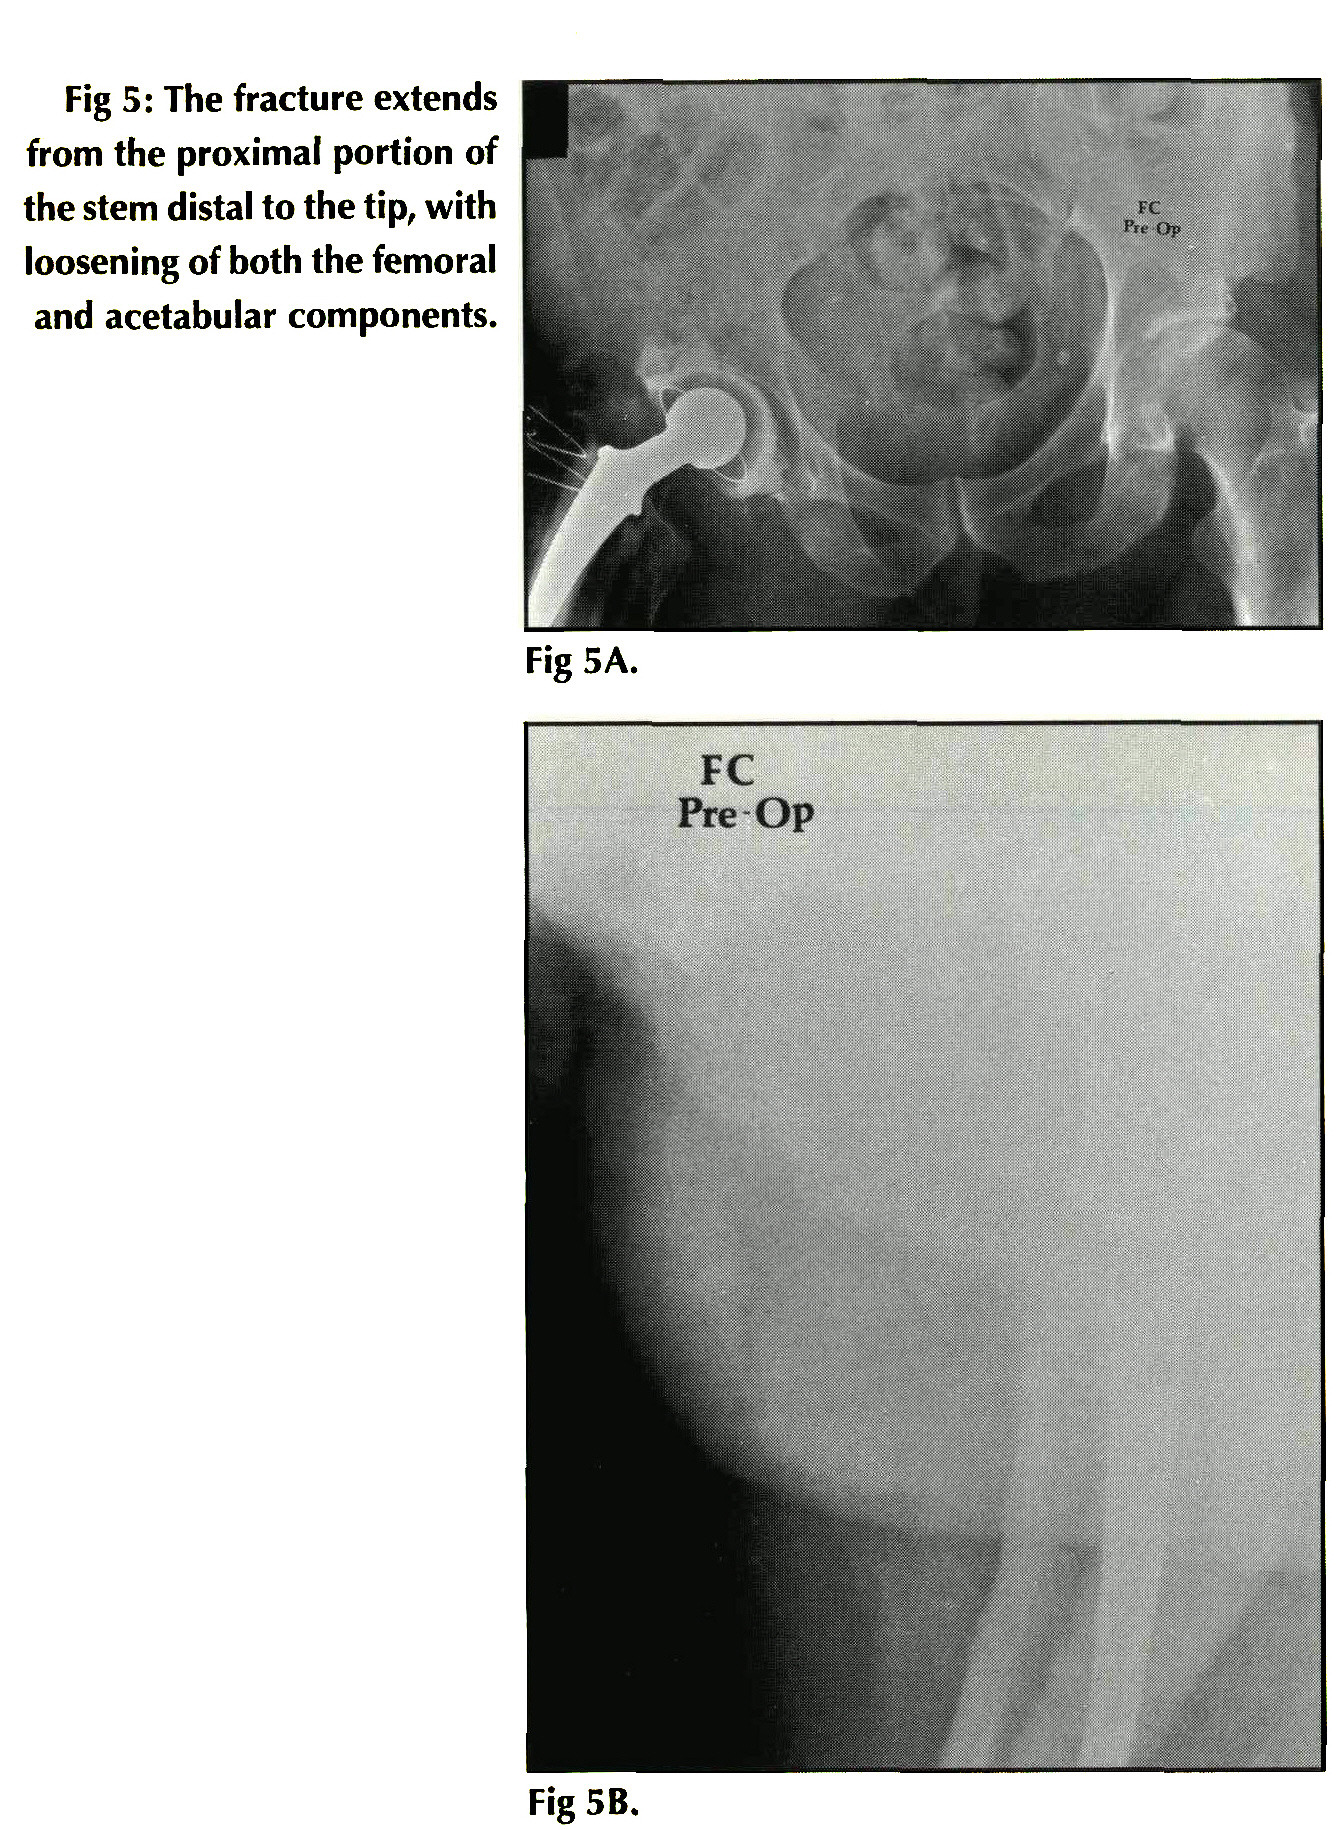 FEMORAL FRACTURES ASSOCIATED WITH LOOSE CEMENTED TOTAL HIP ARTHROPLASTY